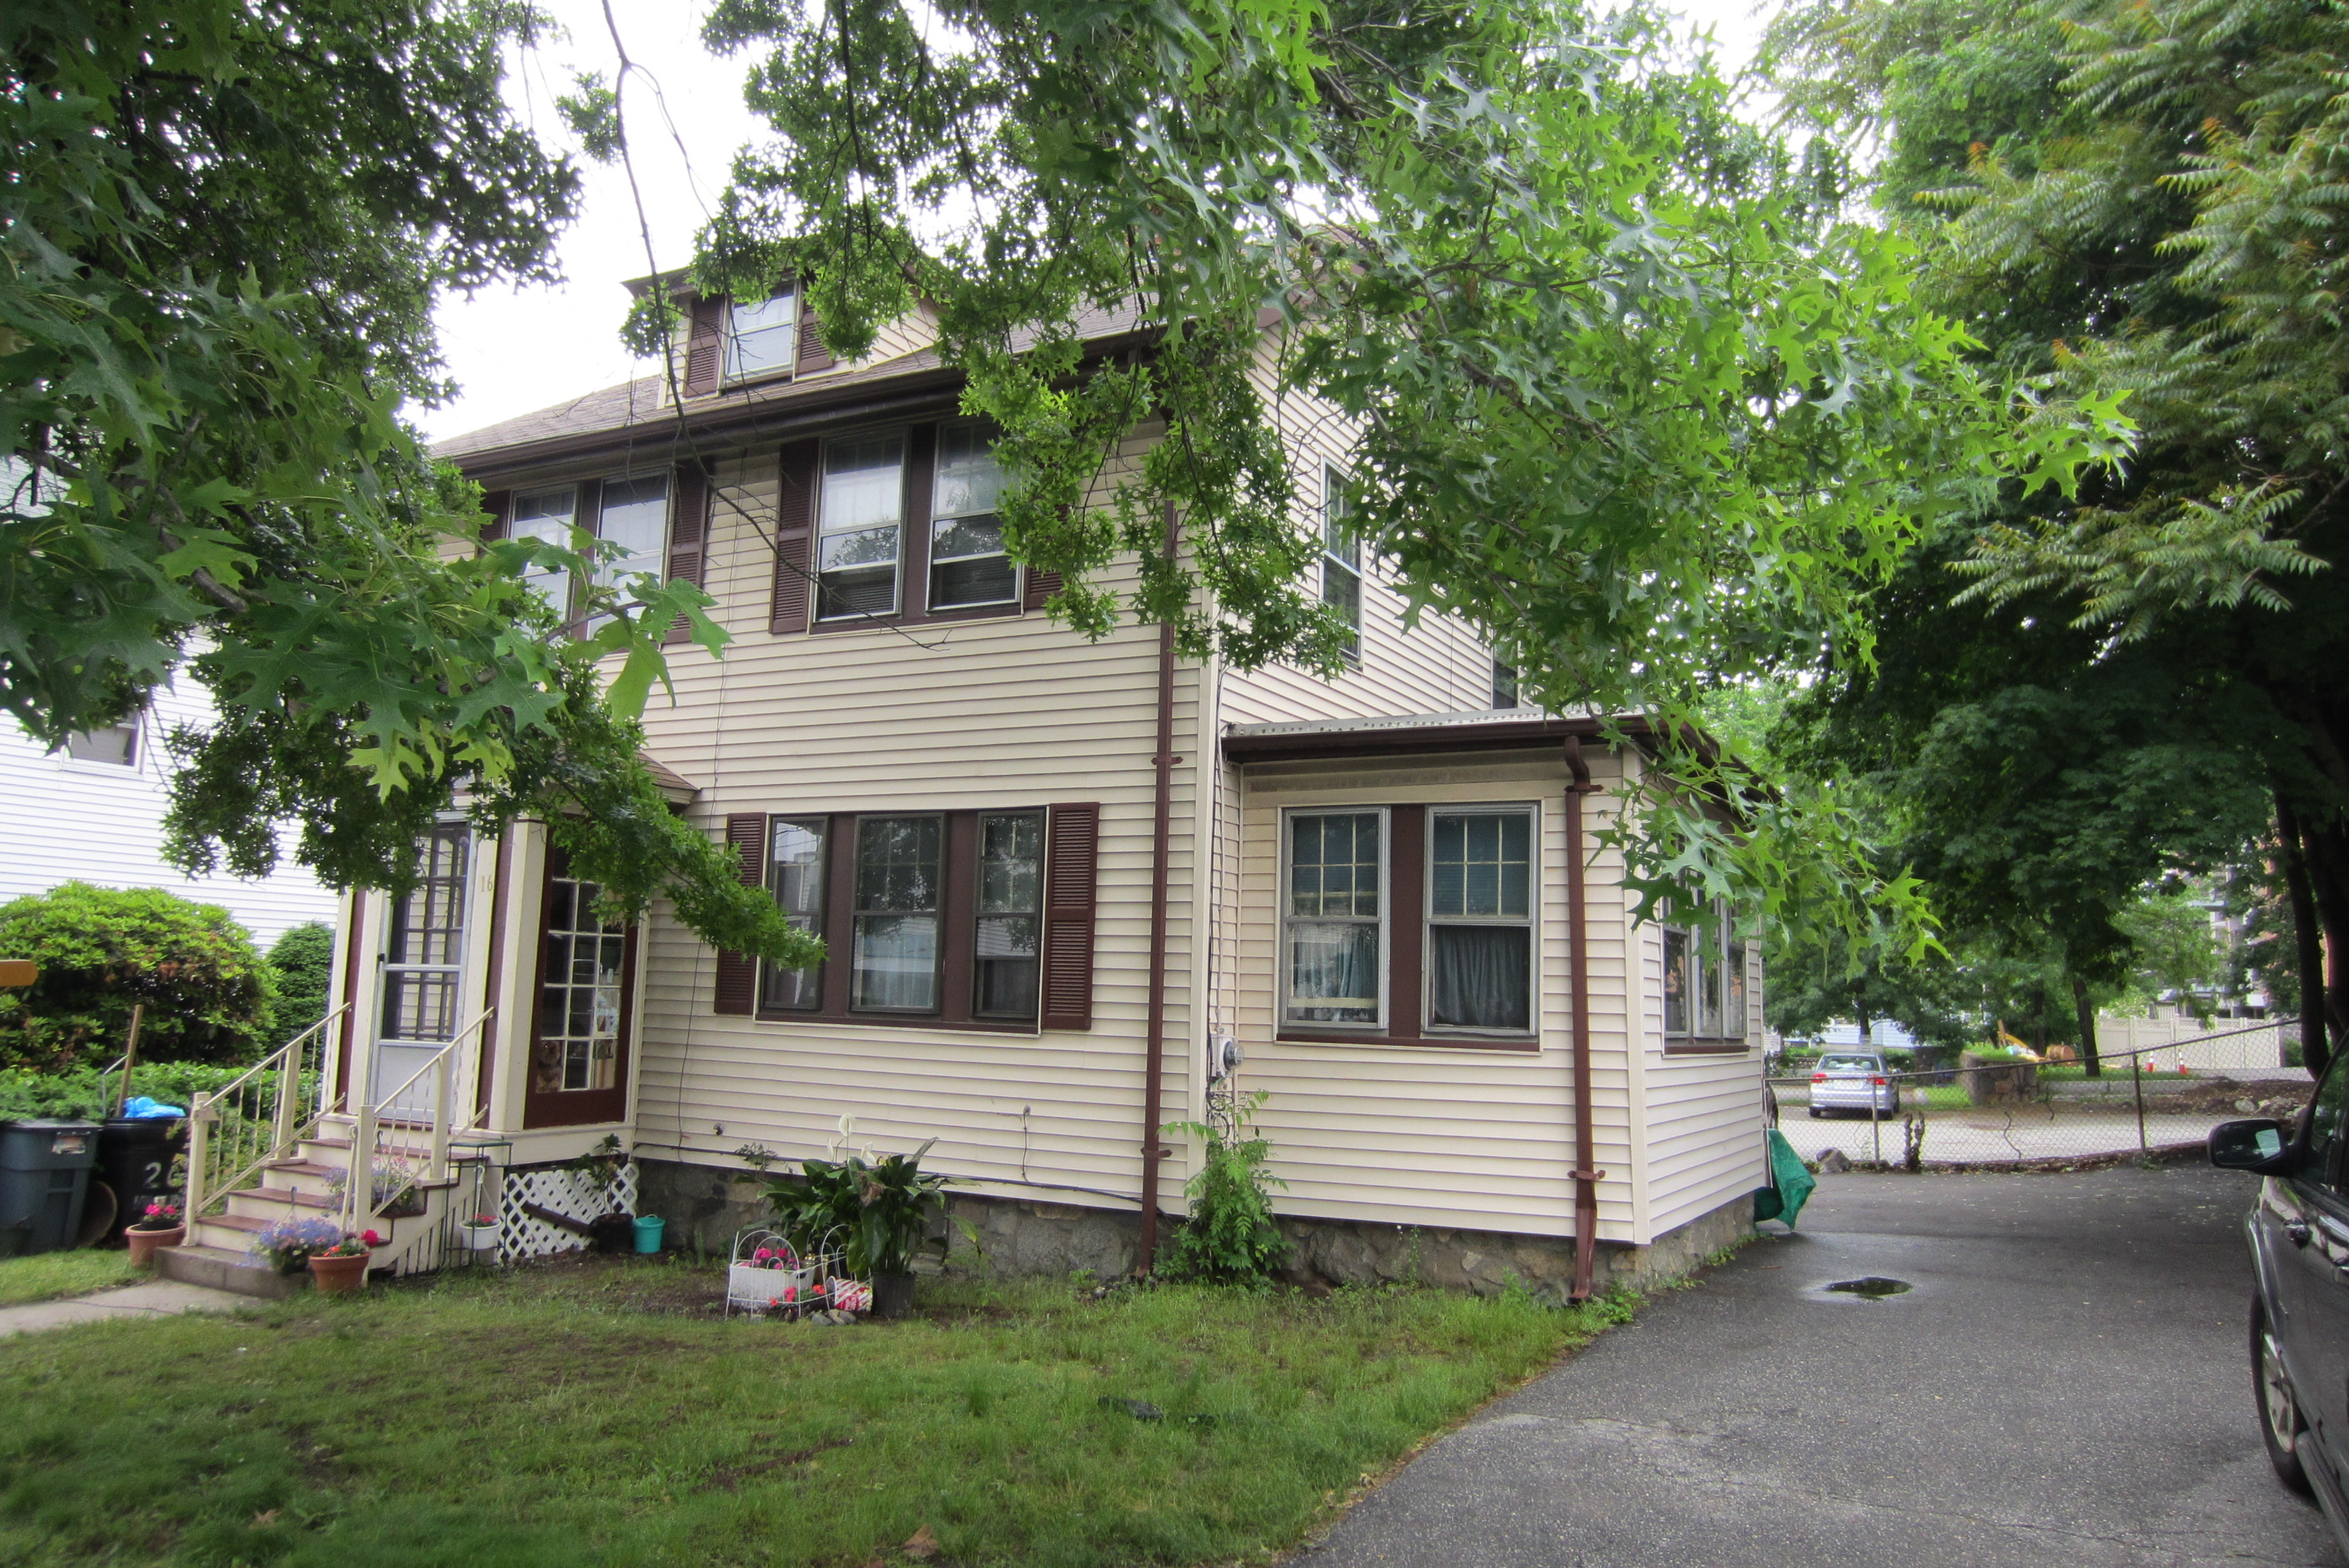 16 East Emerson Street, Melrose, MA 02176